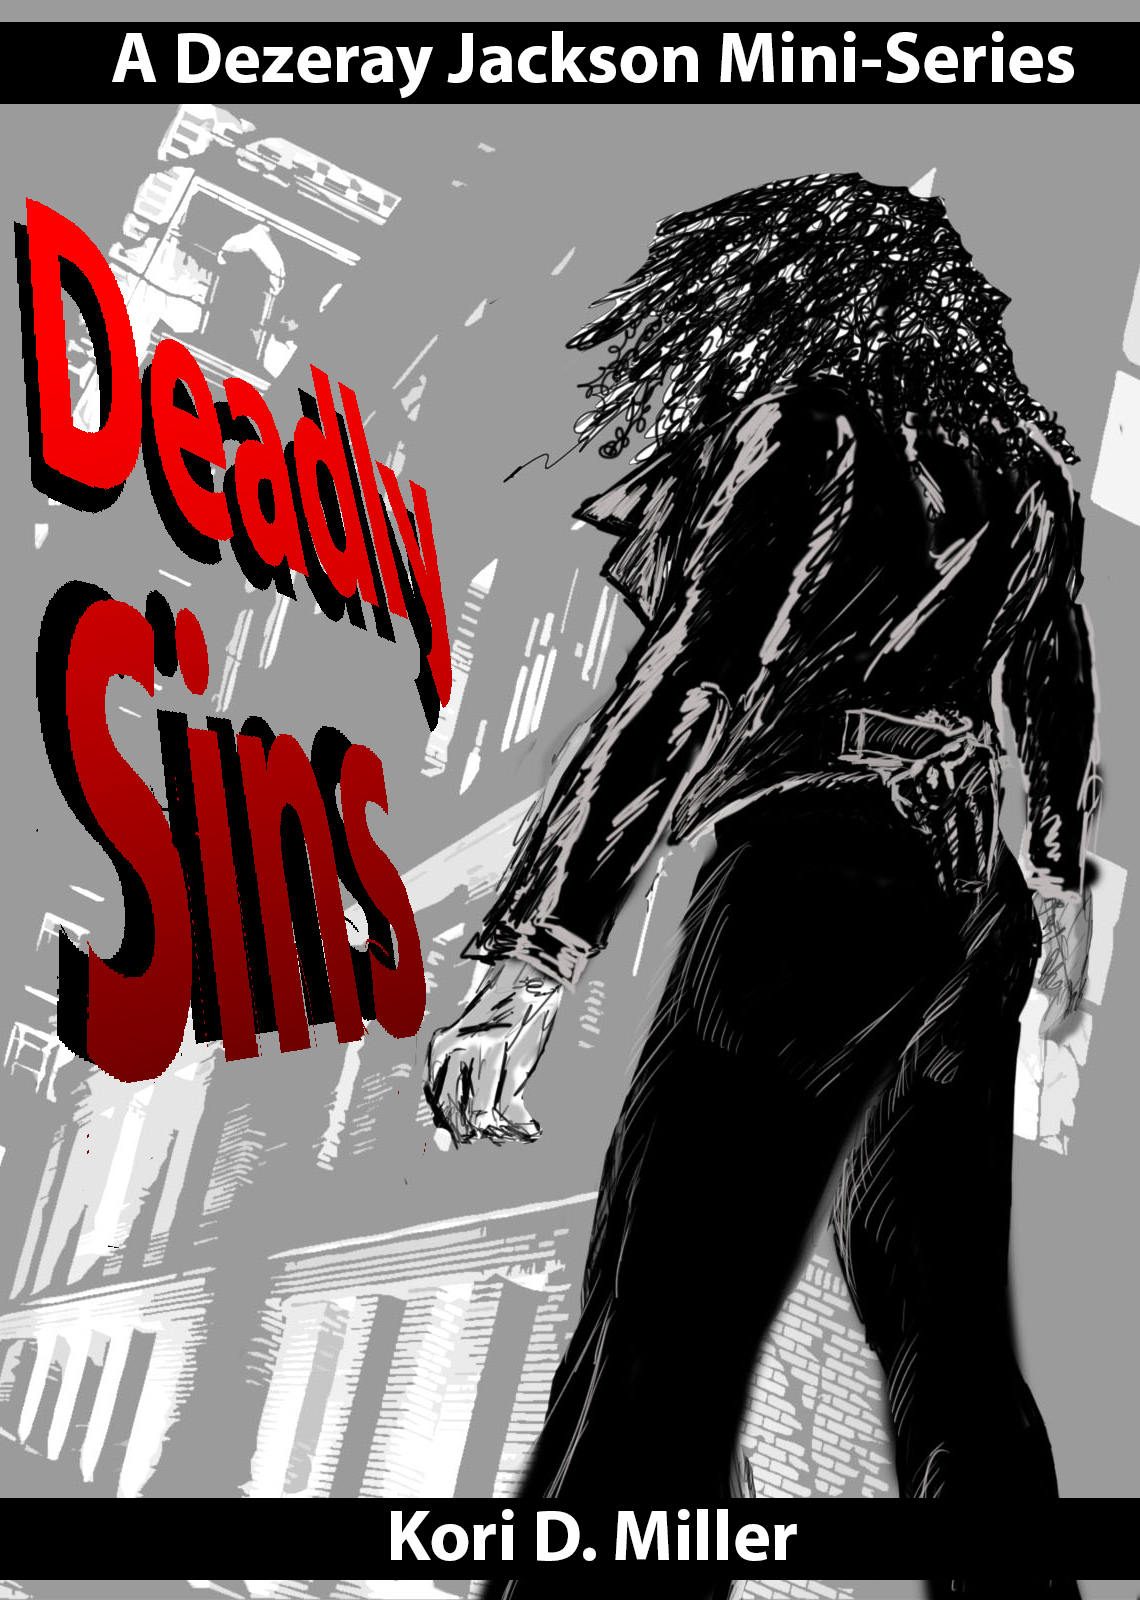 Deadly Sins: A Dezeray Jackson Mini-Series